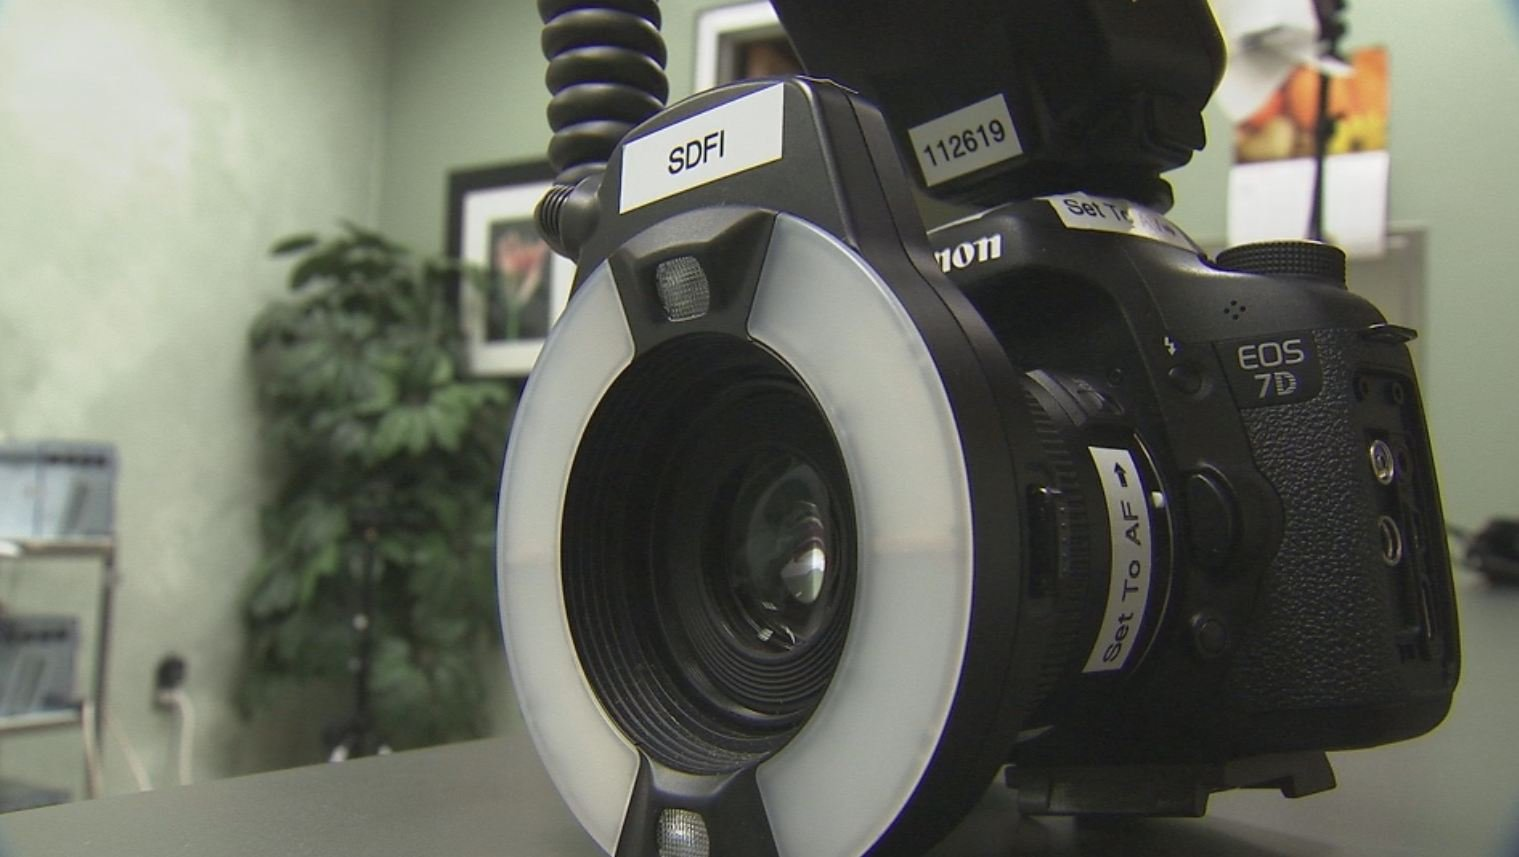 High-definition cameras are making it easier to see and document injuries to domestic abuse victims.